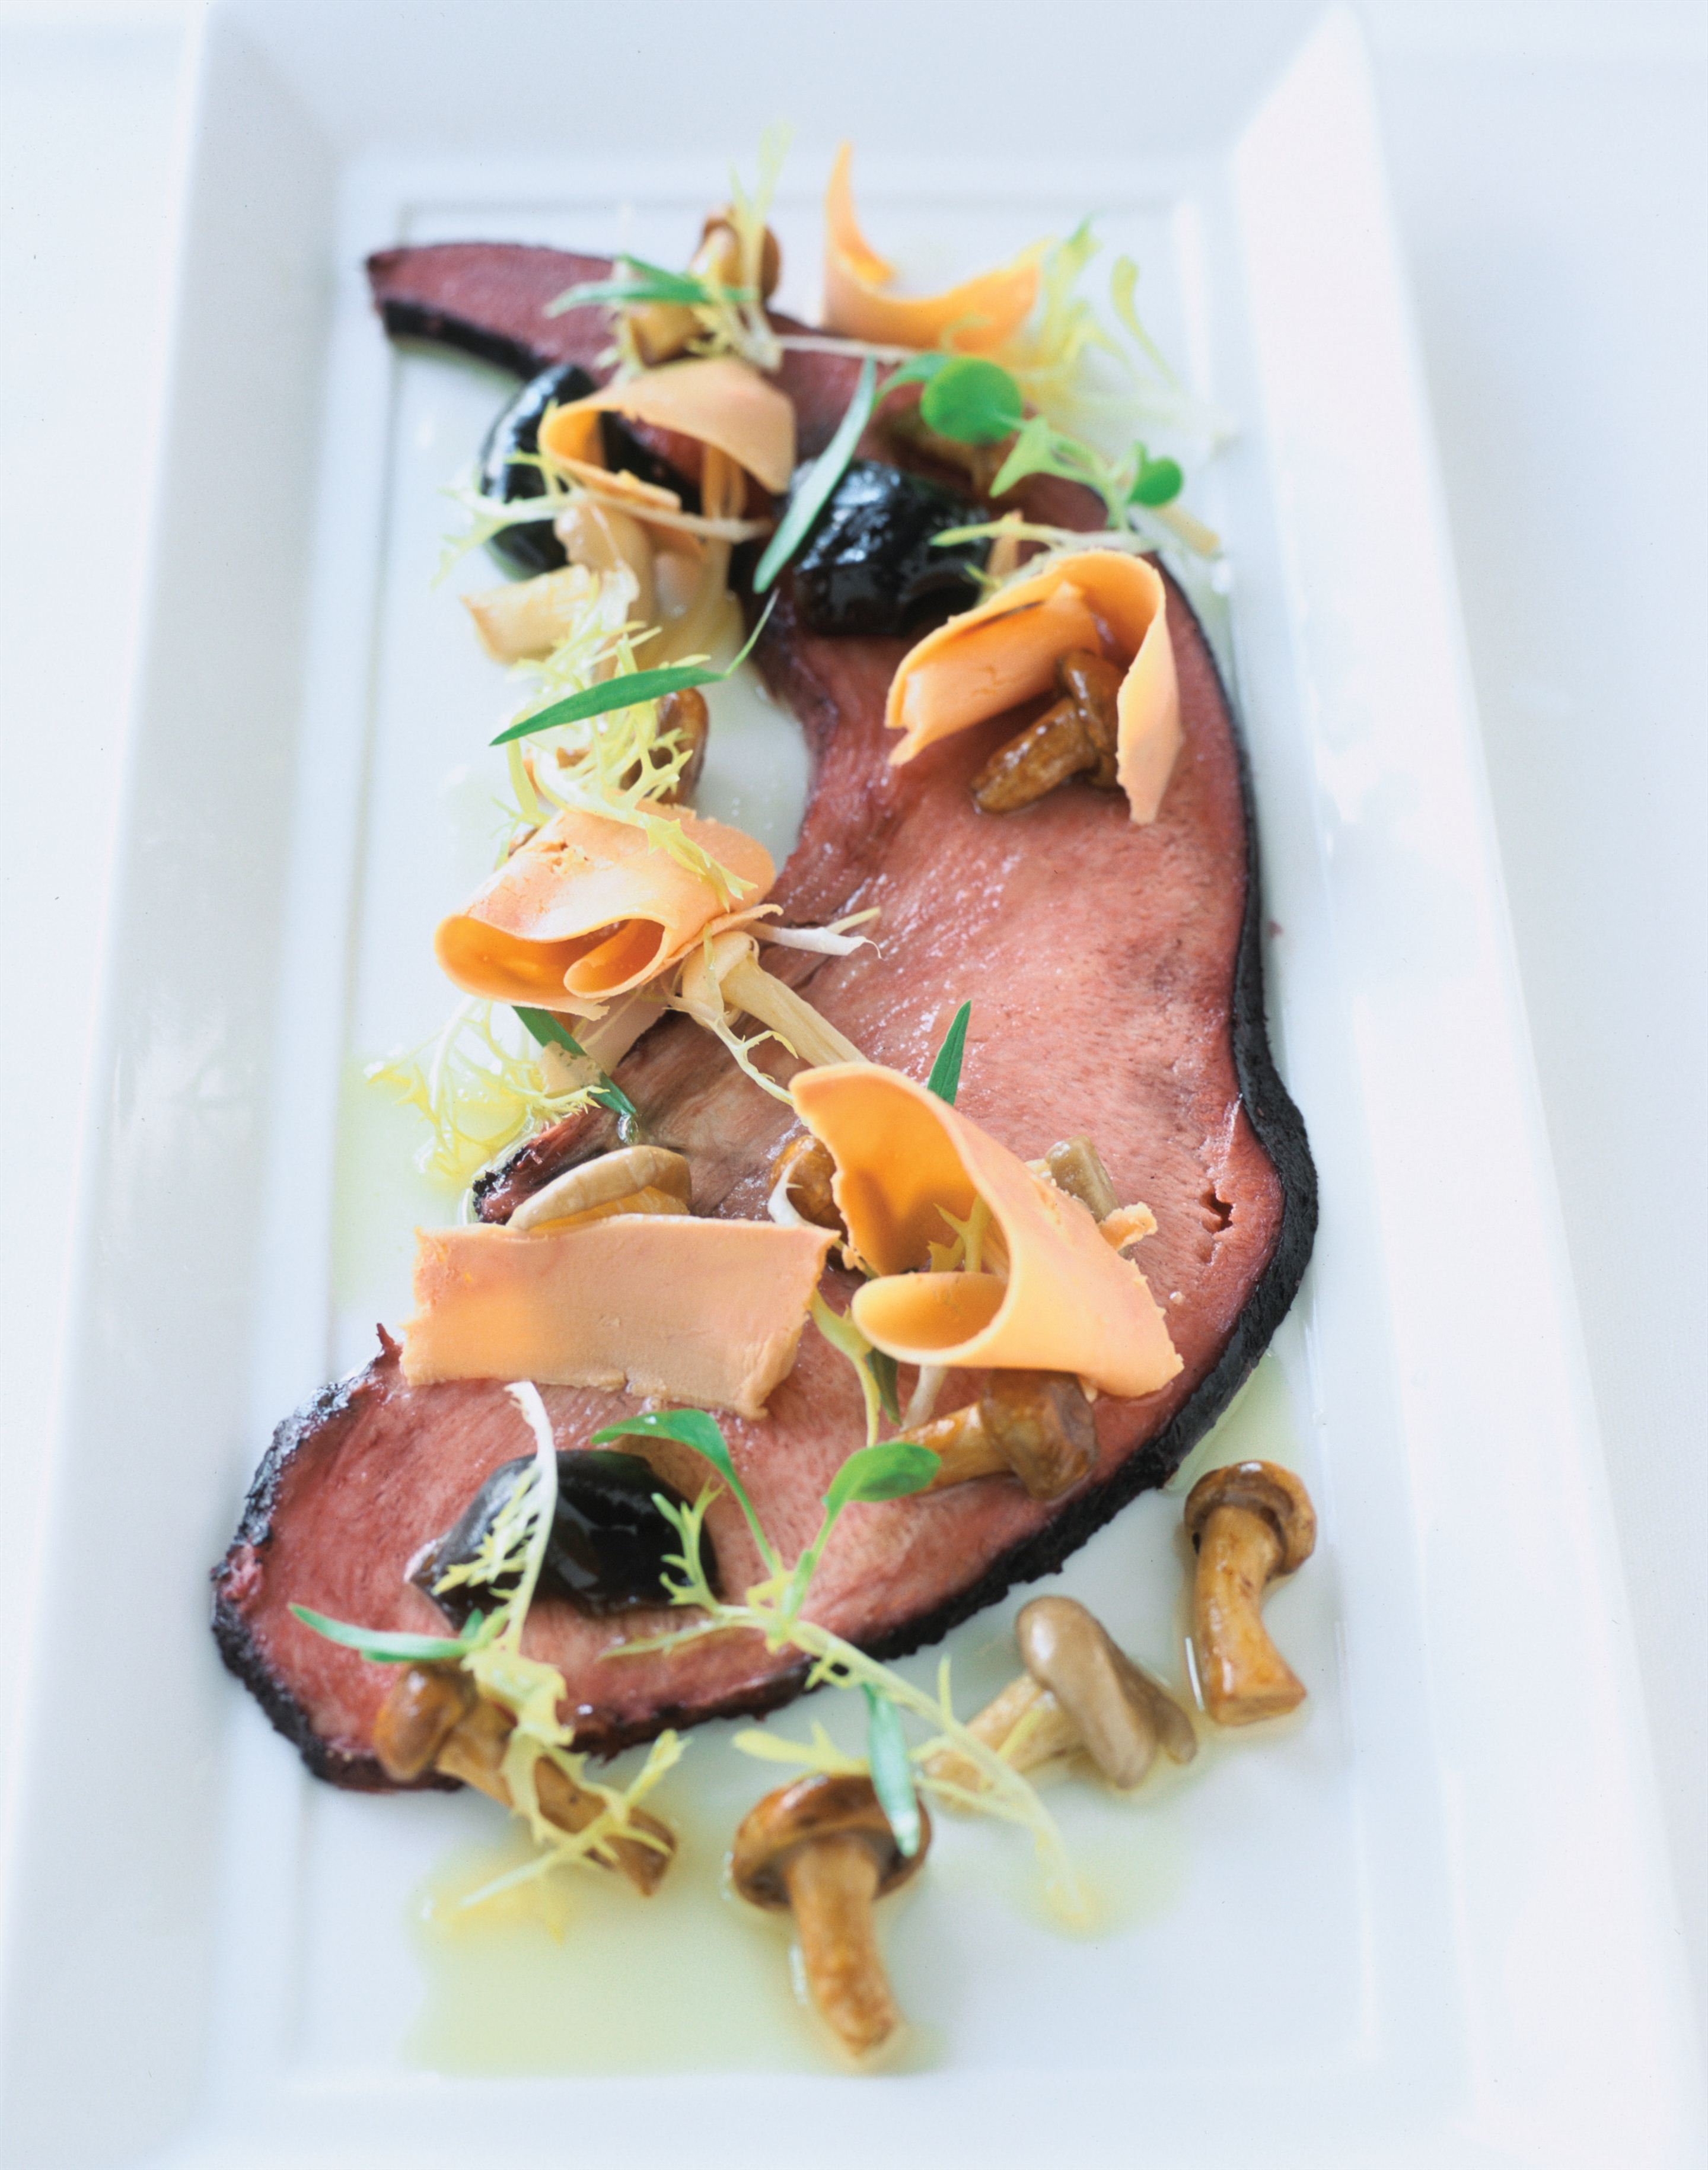 Pickled wagyu tongue with mushrooms à la grecque and shaved foie gras